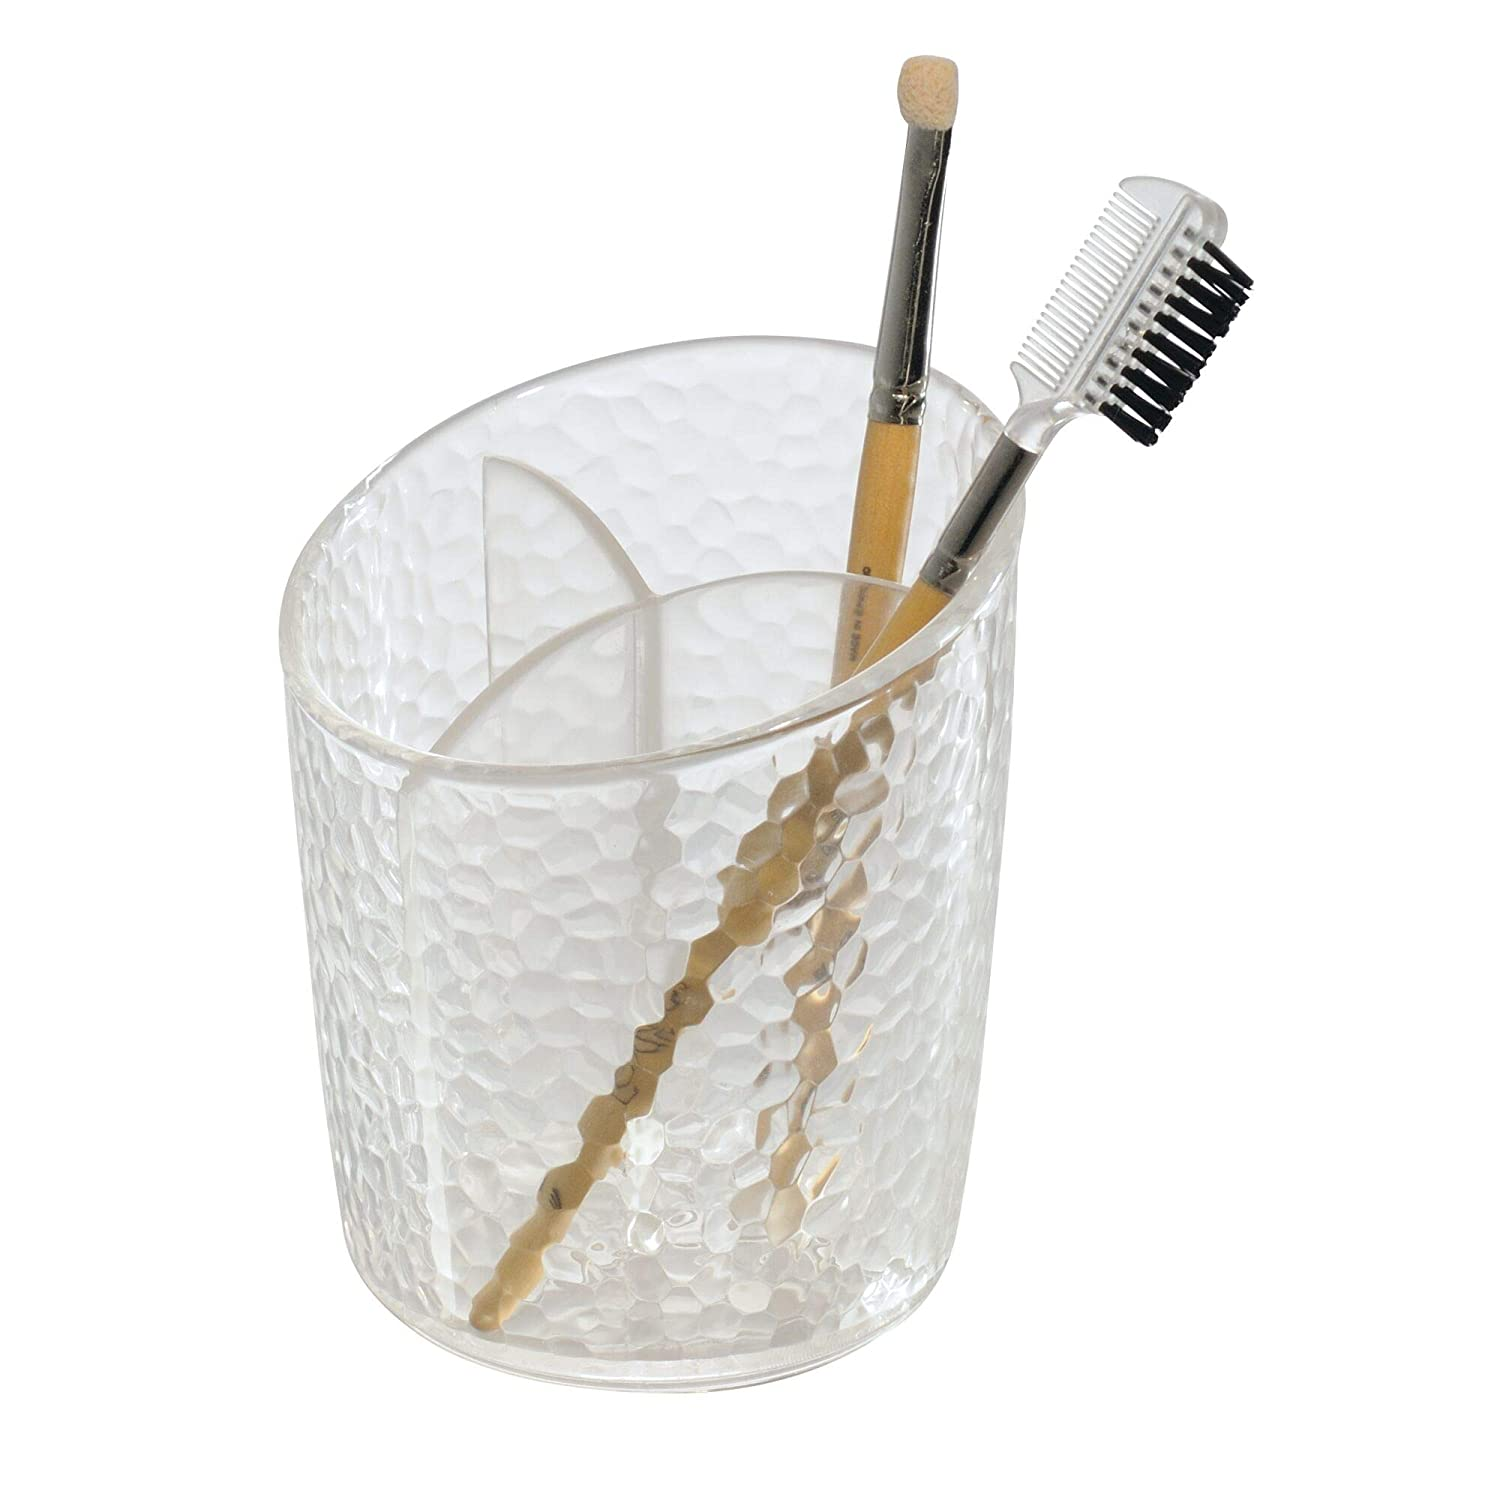 """iDesign Rain Plastic Divided Cosmetic Organizer Cup, Holder for Makeup Brushes, Toothbrushes, Beauty Products on Bathroom, Vanity Countertops, College Dorm, Bedroom Desks, 3.5"""" x 3.5"""" x 4.25"""" - Clear"""